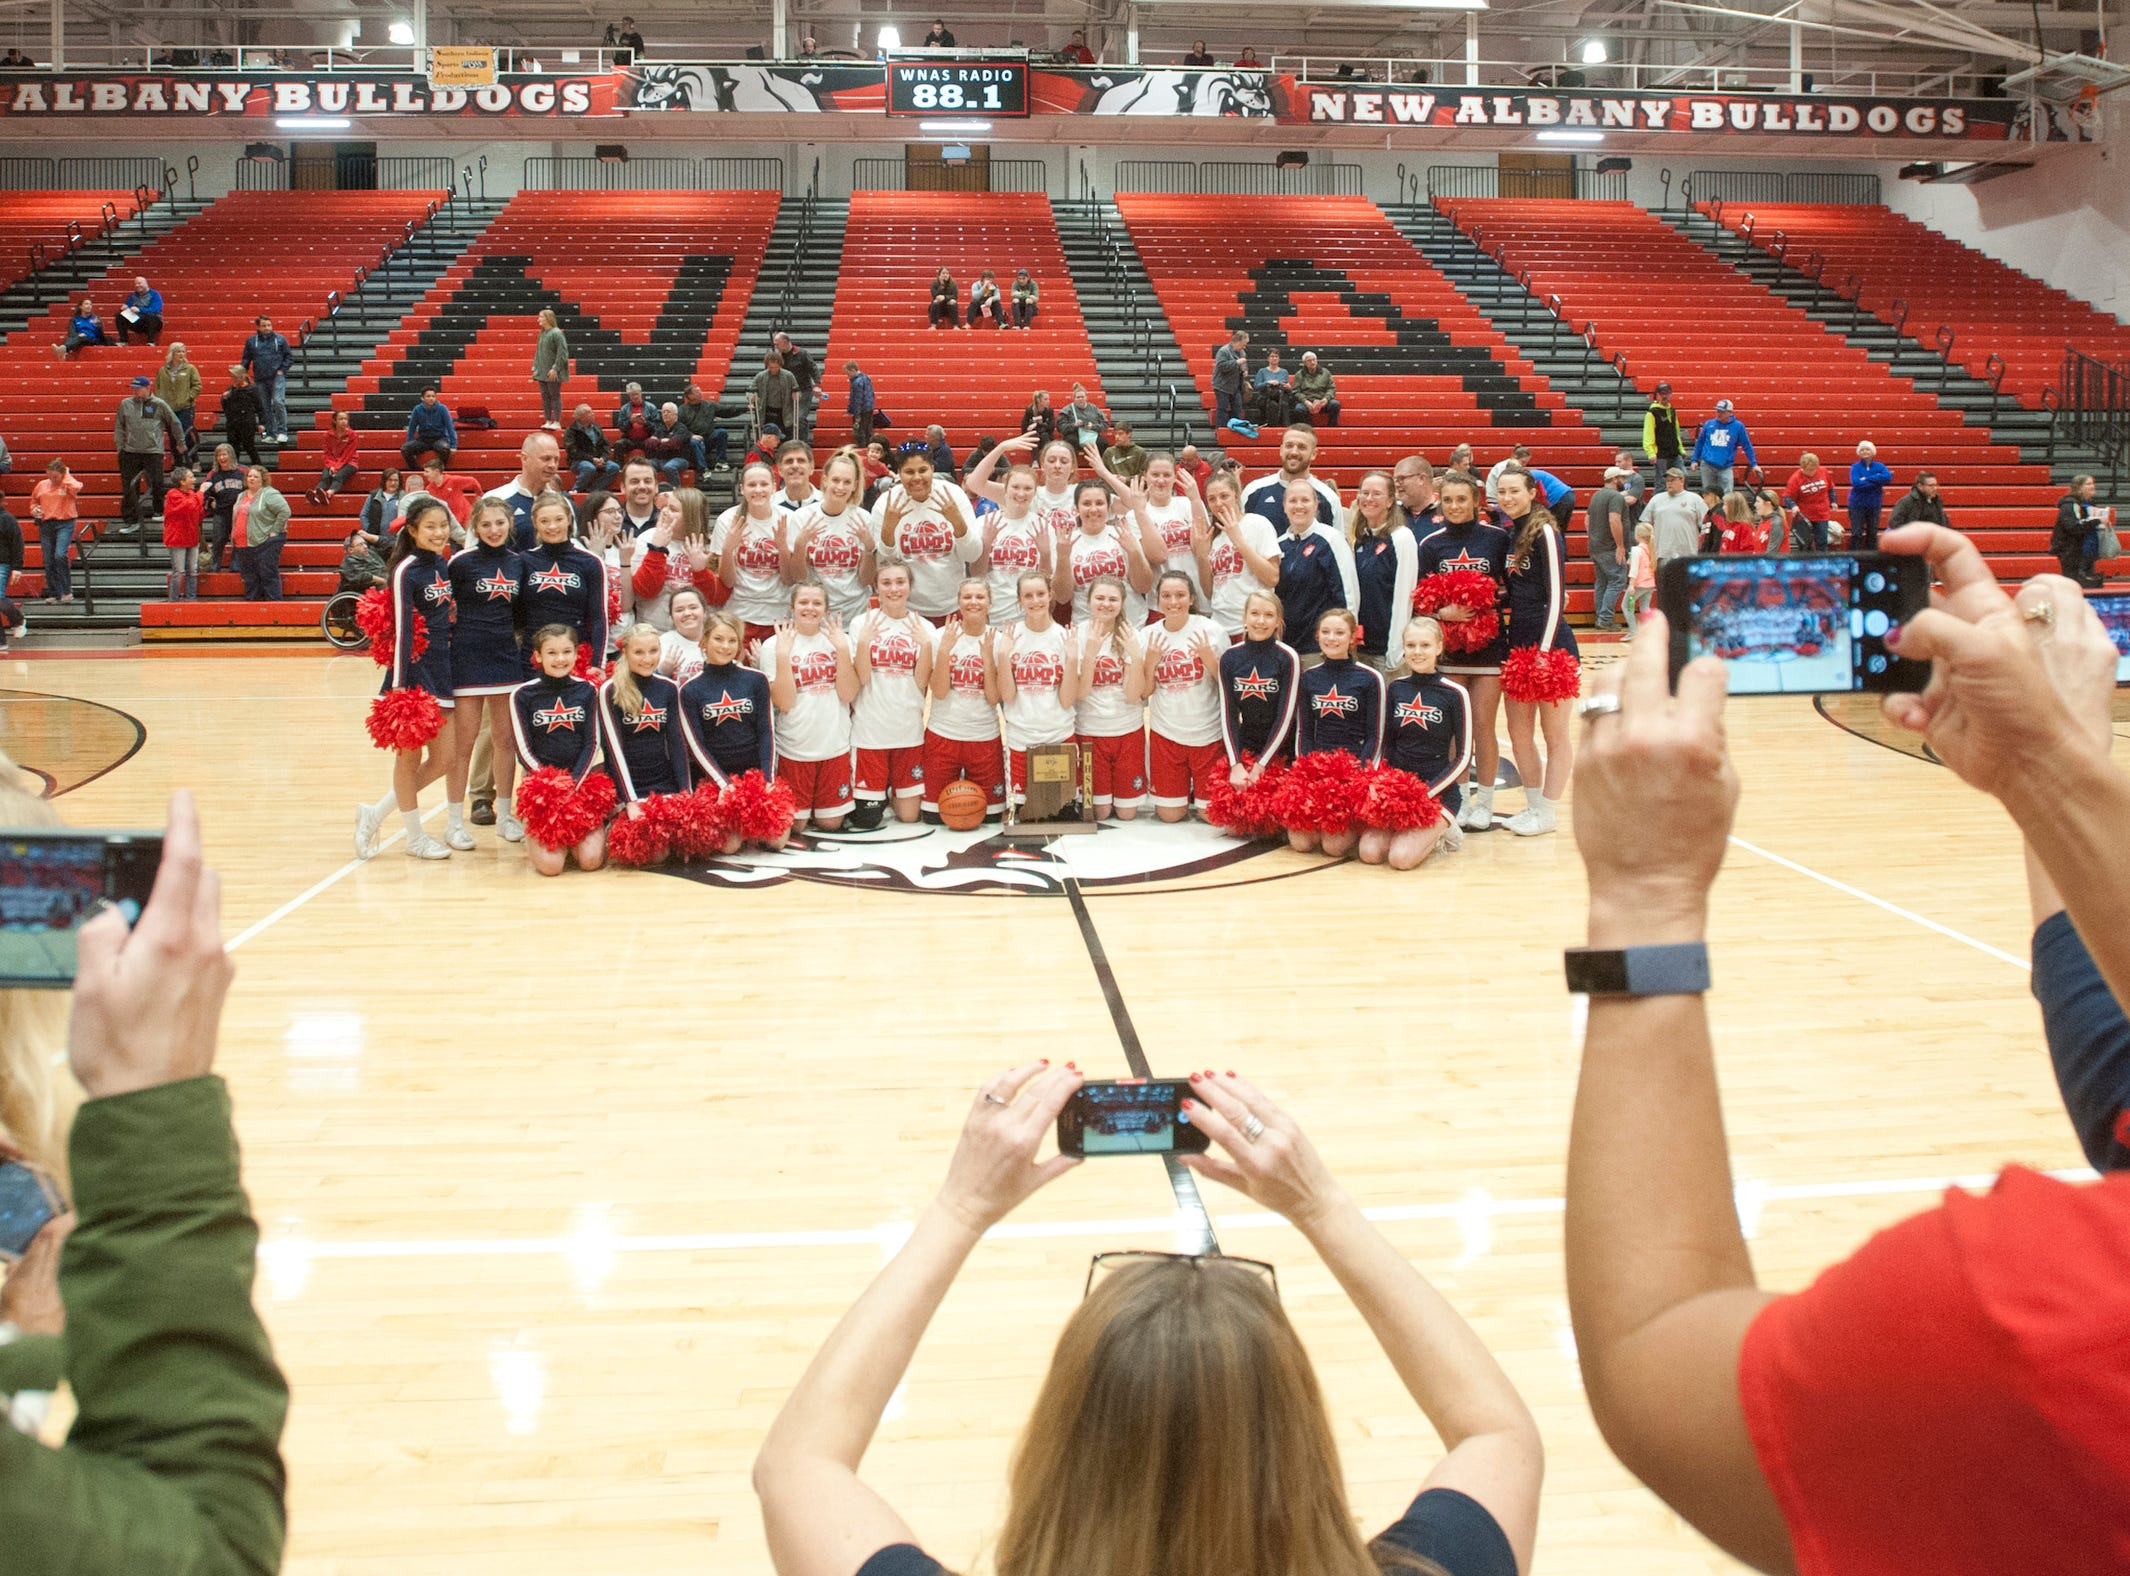 After the game, friends and family shoot the Bedford North Lawrence team and their trophy.03 February 2019